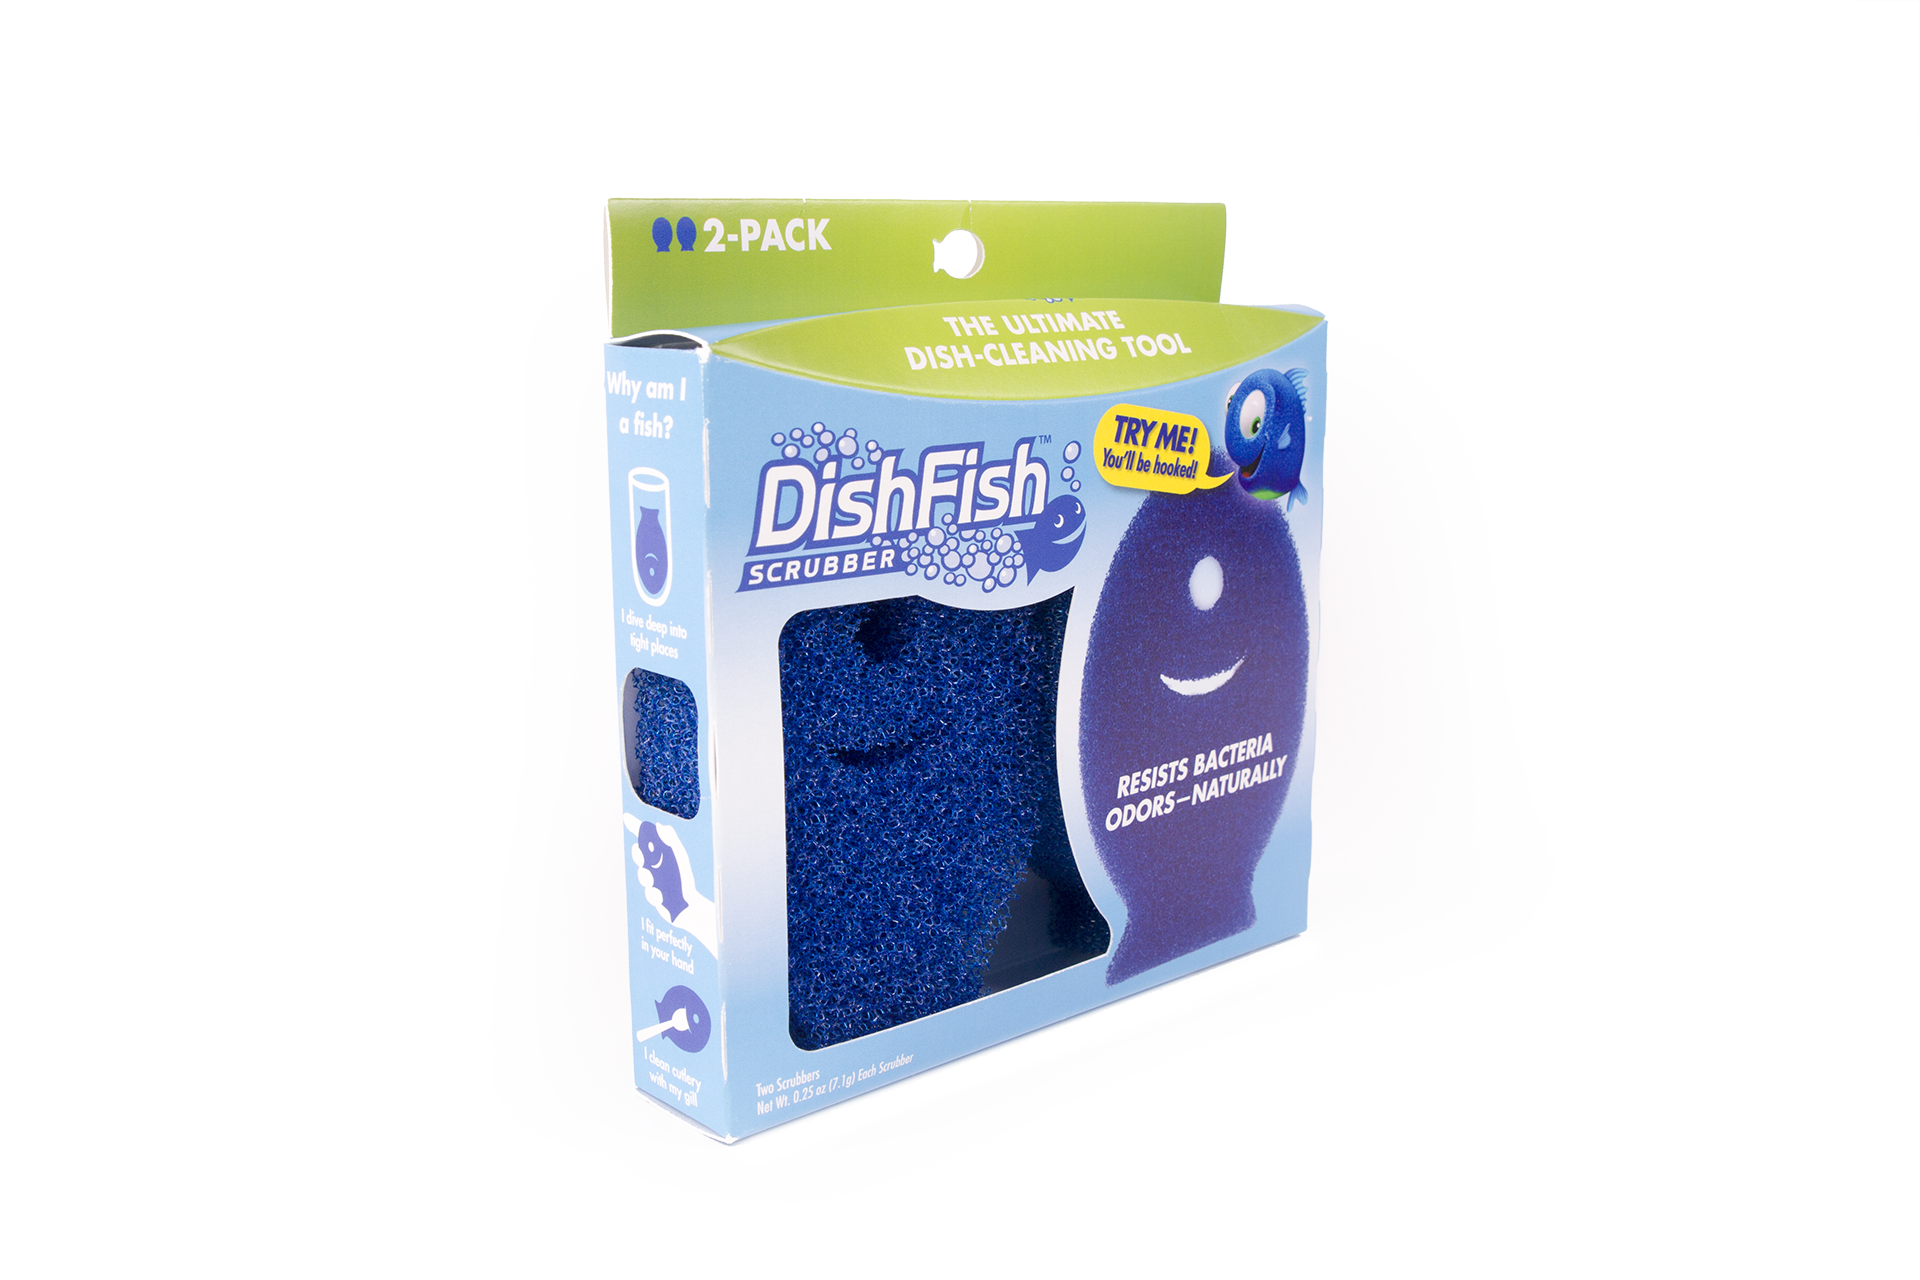 dishfish-scrubber-2-pack-left-side-02.png